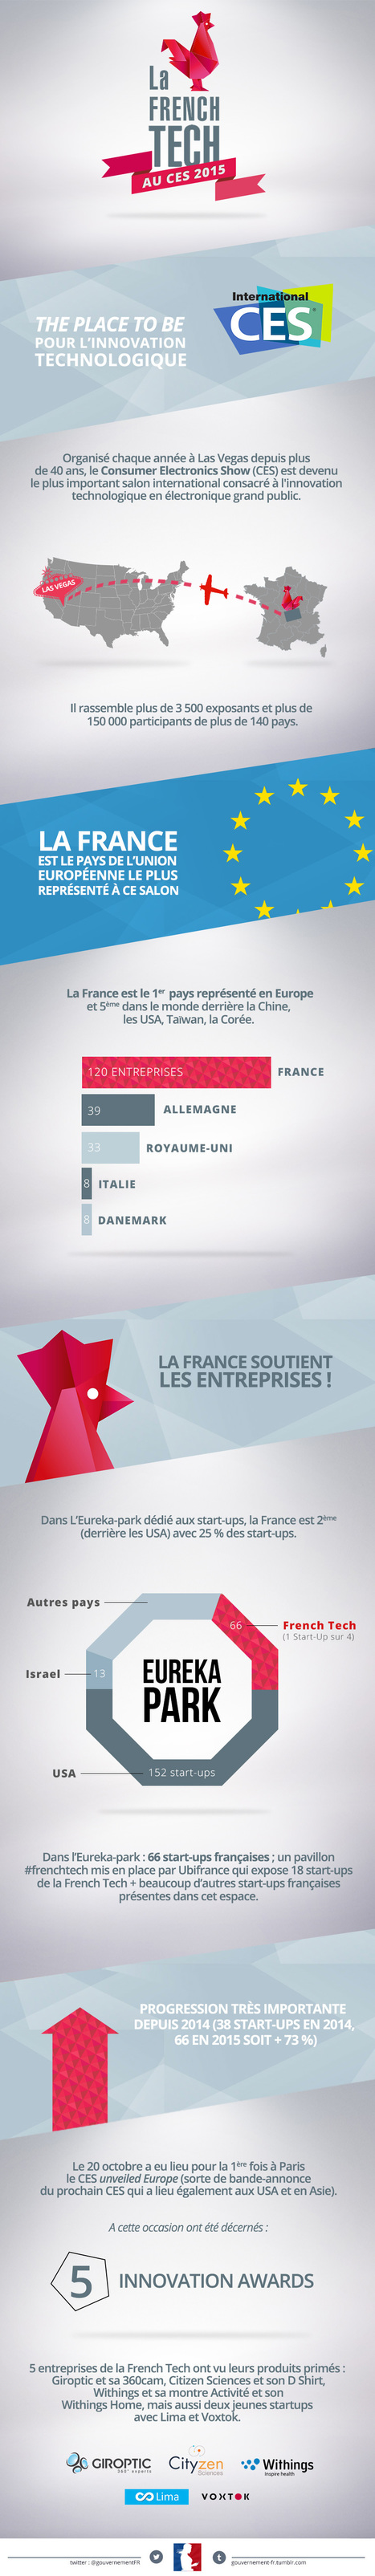 Bilan du CES 2015 pour @LaFrenchTech | cross pond high tech | Scoop.it